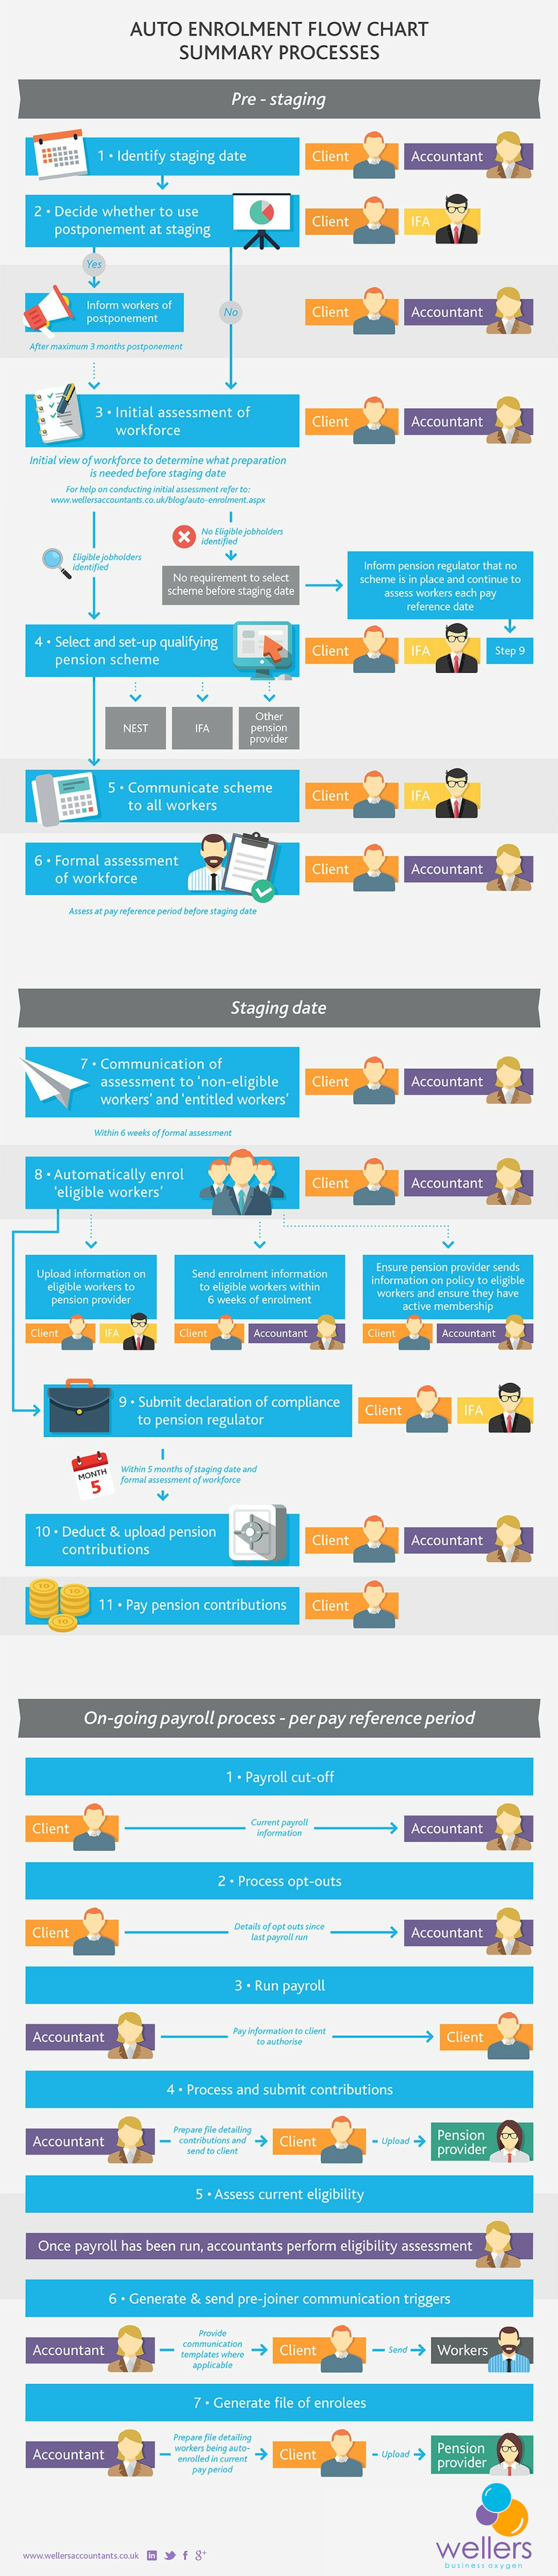 Infographic for the qualifying pension scheme auto enrolment